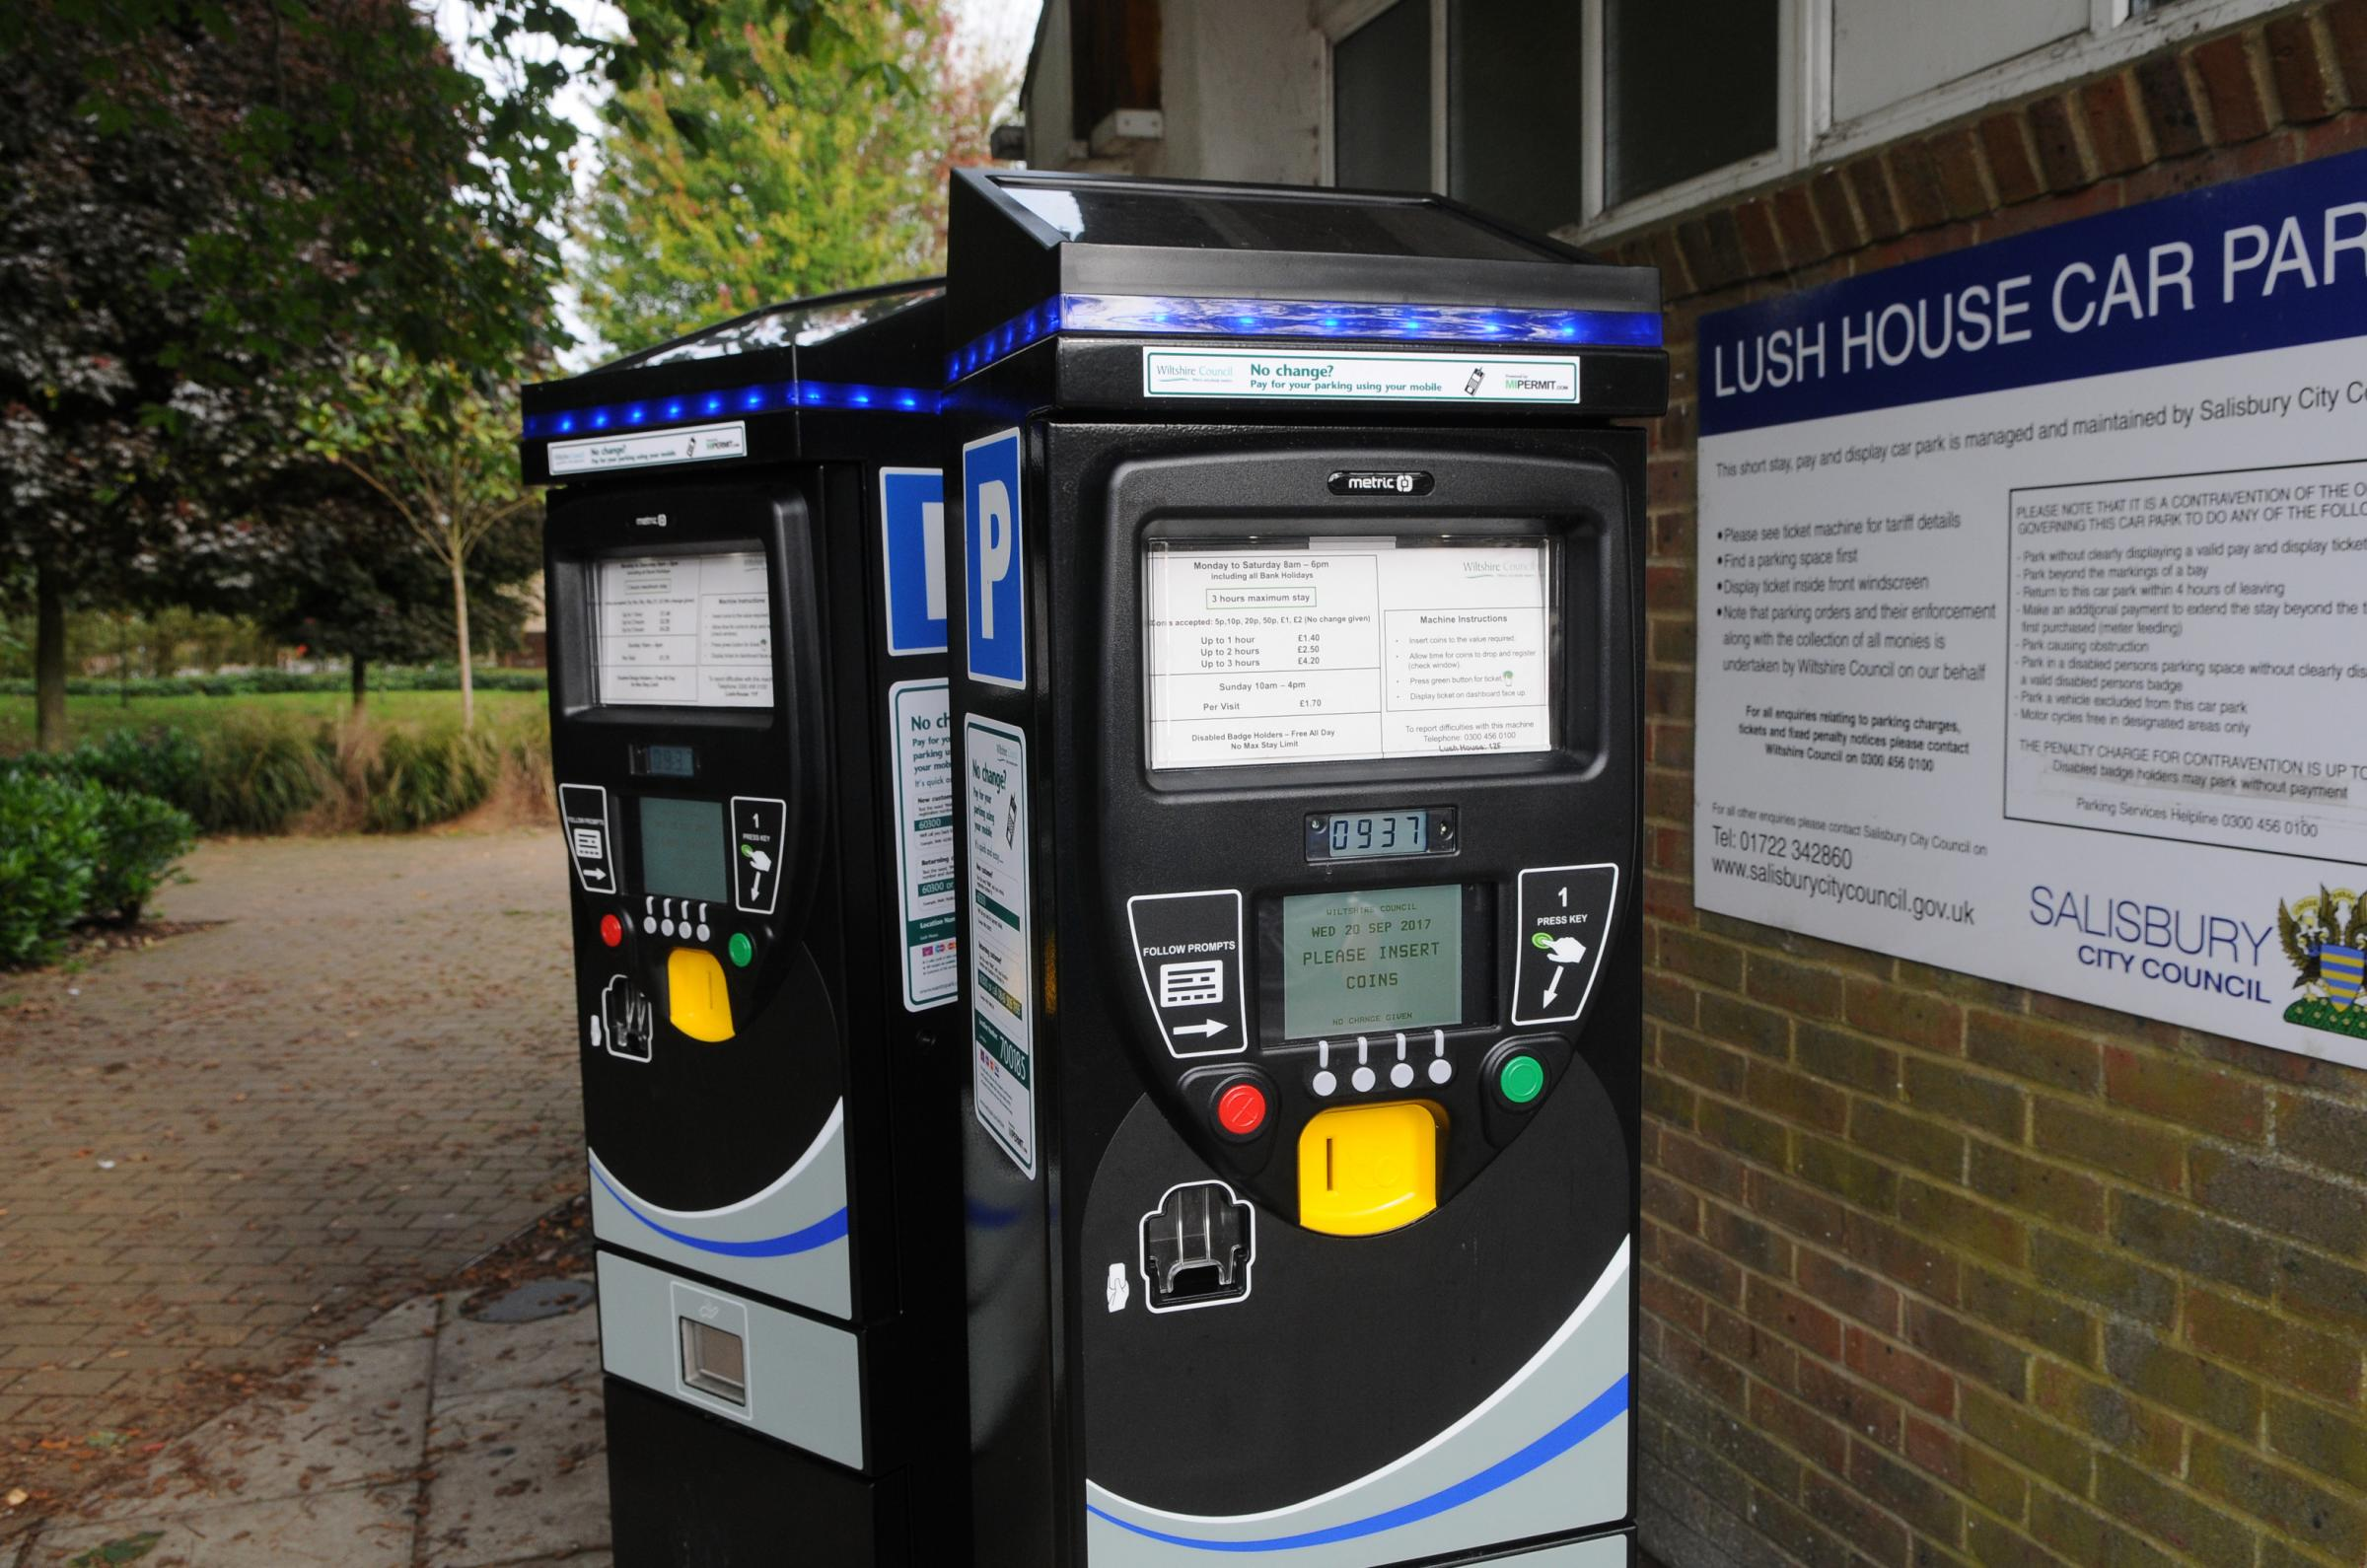 New parking meters at Lush House car park, Salisbury. DC8308P2..Picture by Tom Gregory.